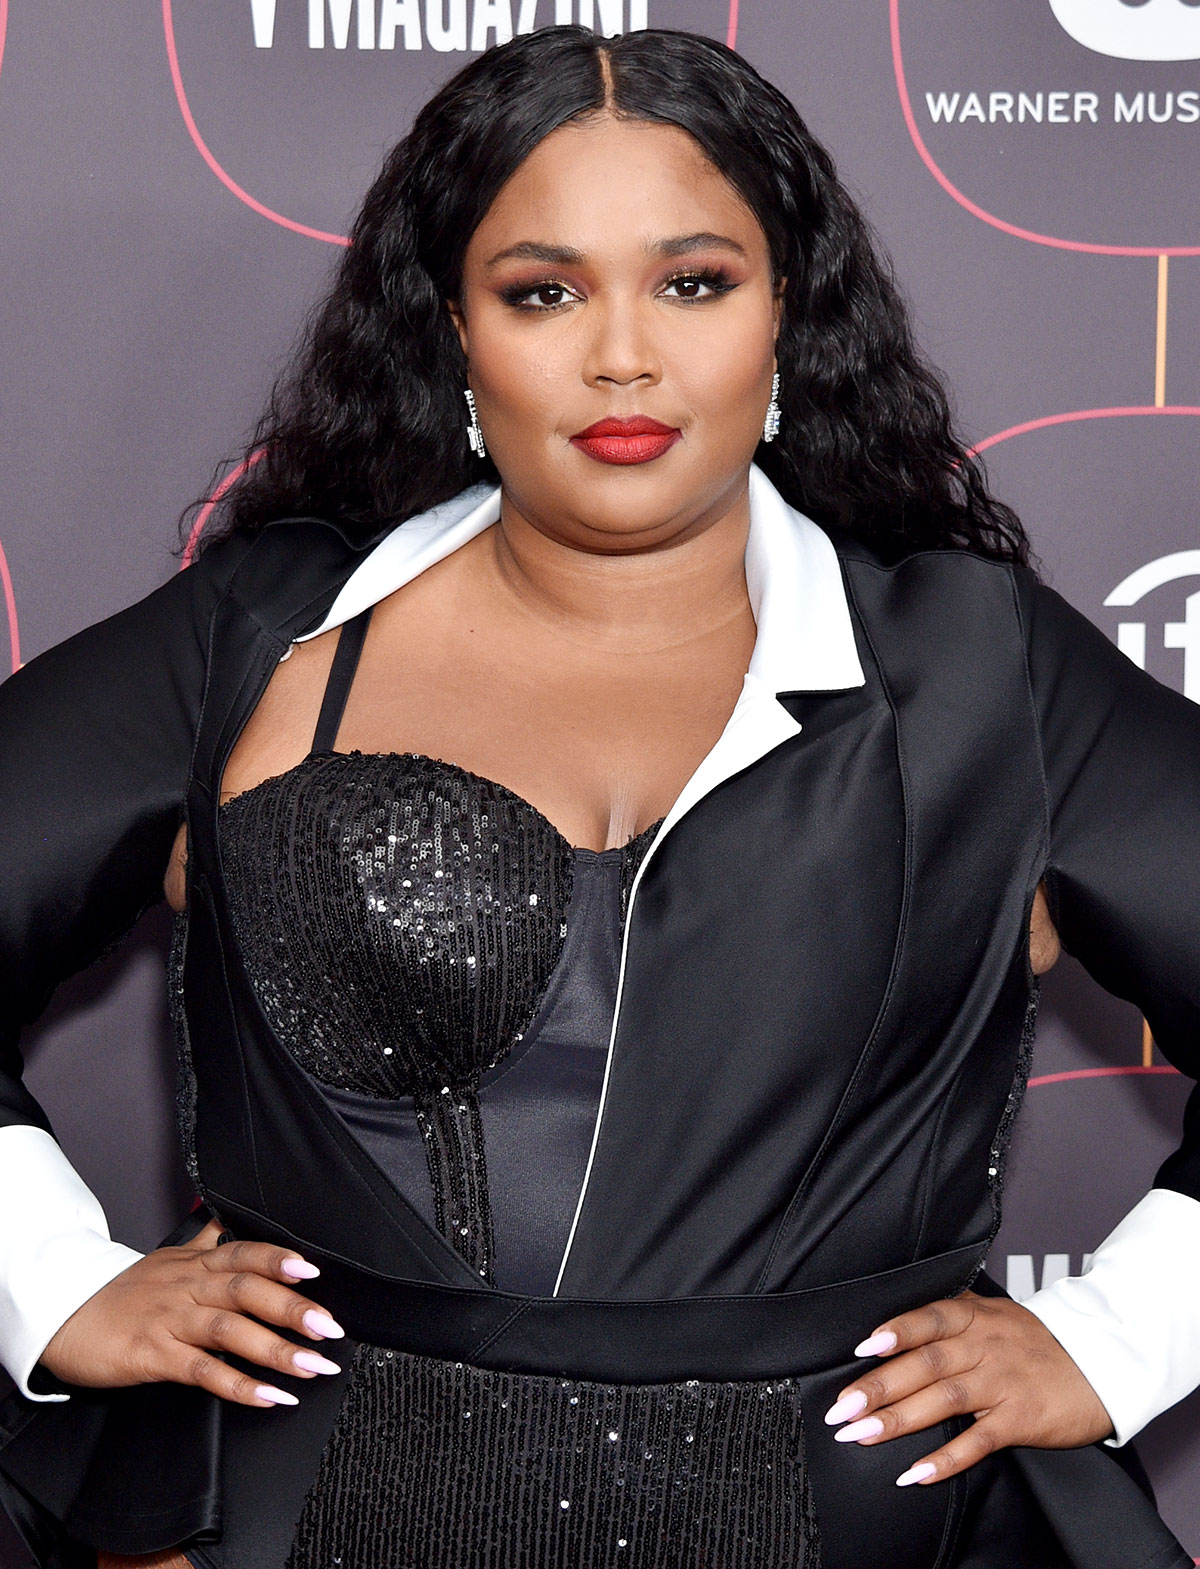 Lizzo attends the Warner Music Group Pre-Grammy Party 2020 at Hollywood Athletic Club on January 23, 2020